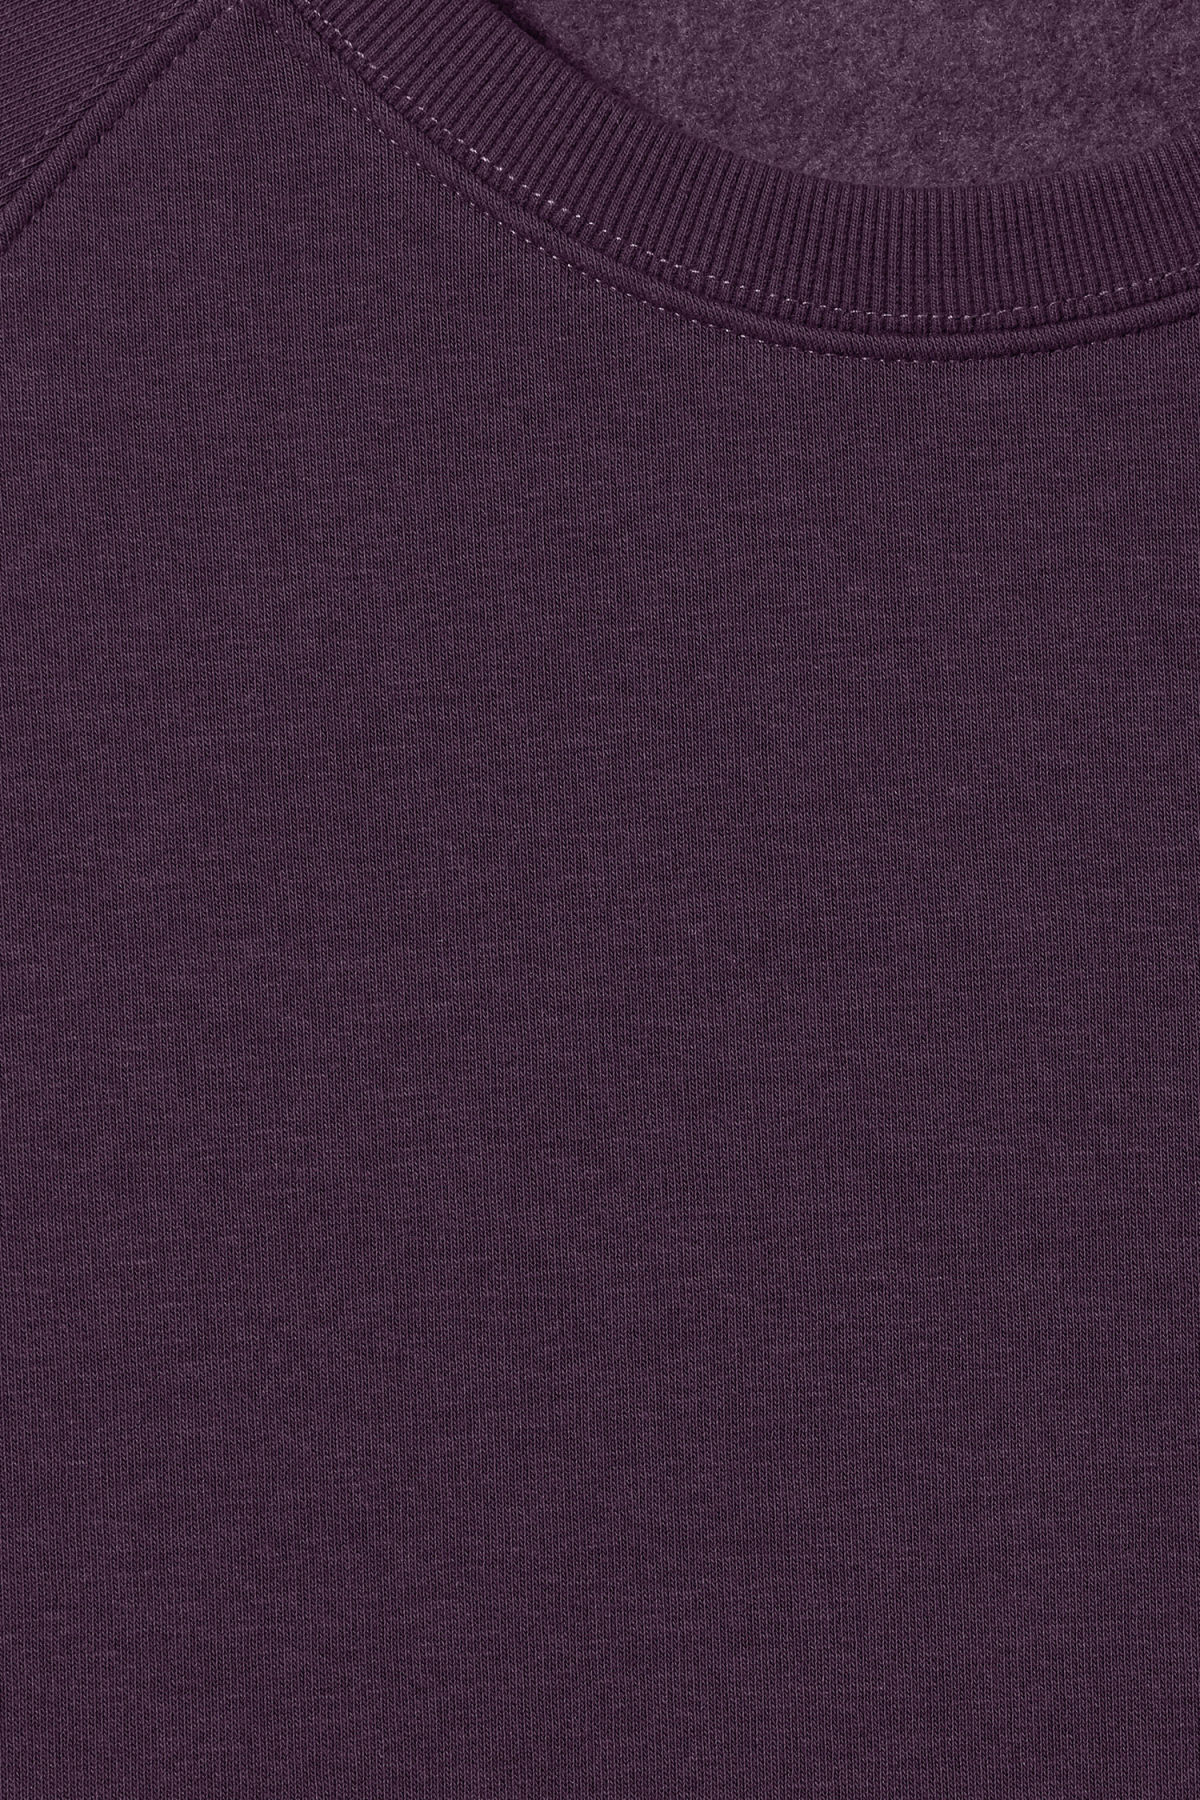 Detailed image of Weekday paris sweatshirt in purple